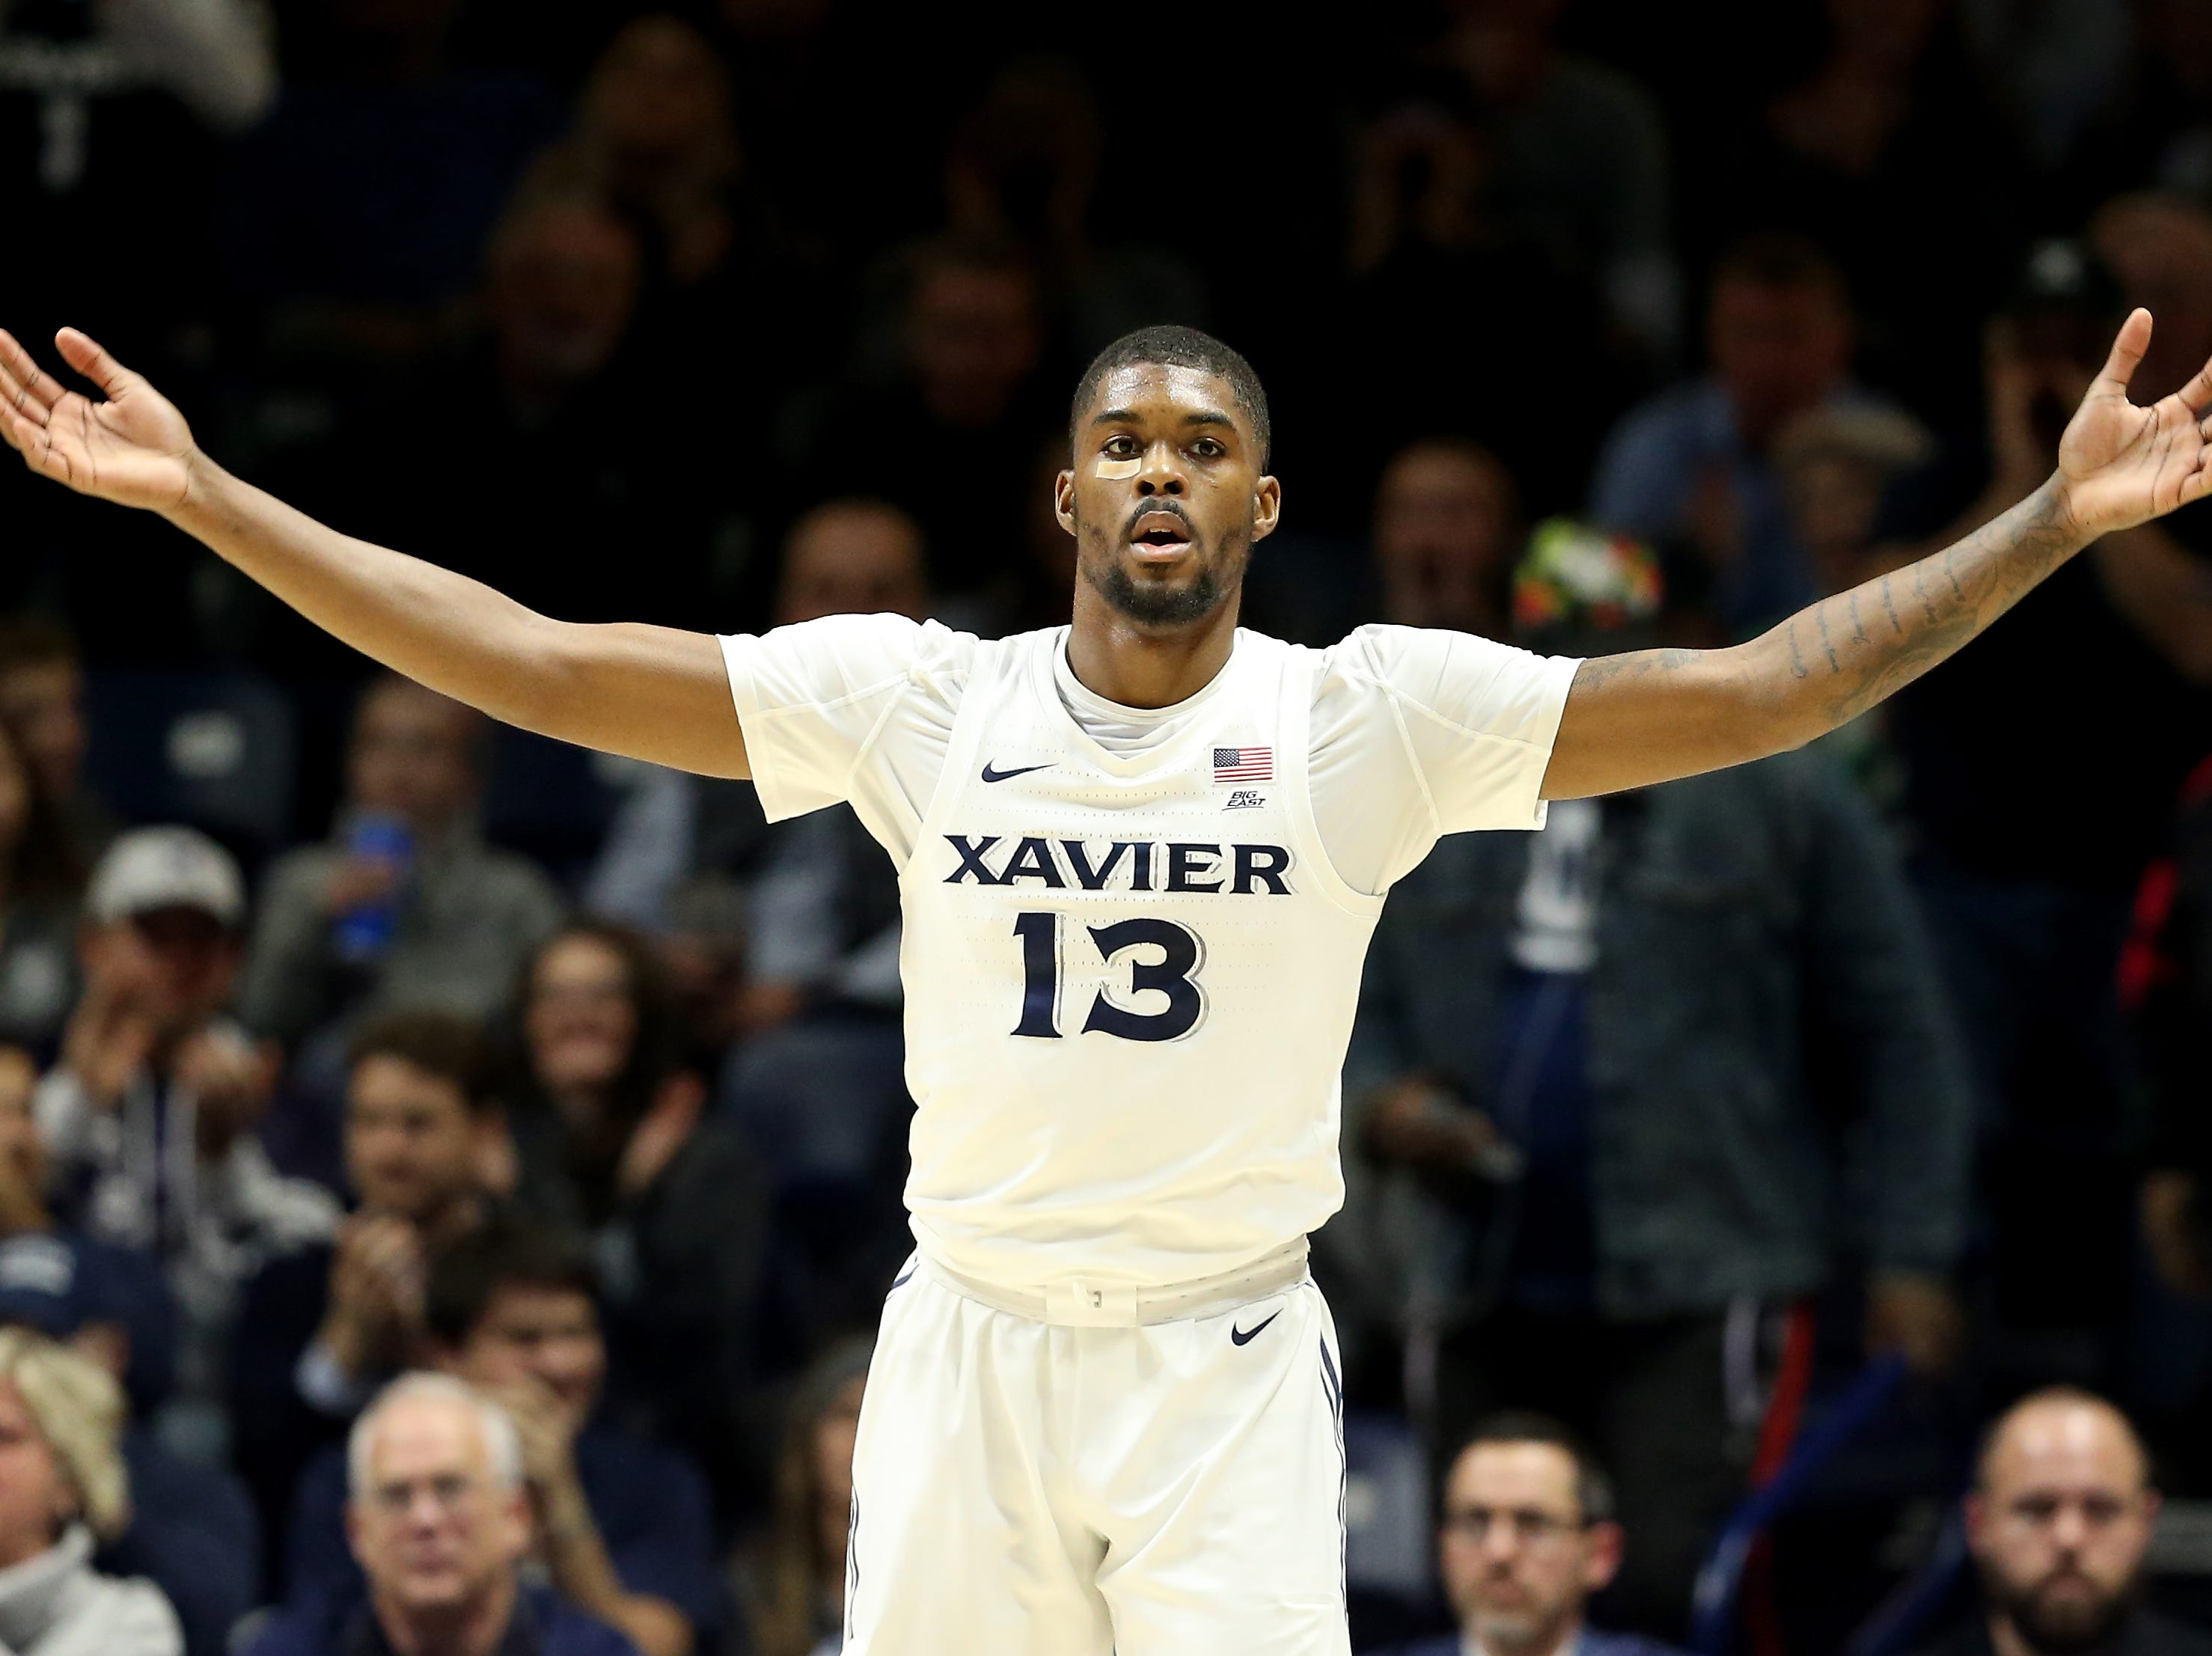 Xavier Musketeers forward Naji Marshall (13) pumps up the crowd in the first half of an NCAA college basketball game against the Seton Hall Pirates, Wednesday, Jan. 2, 2019, at the Cintas Center in Cincinnati.